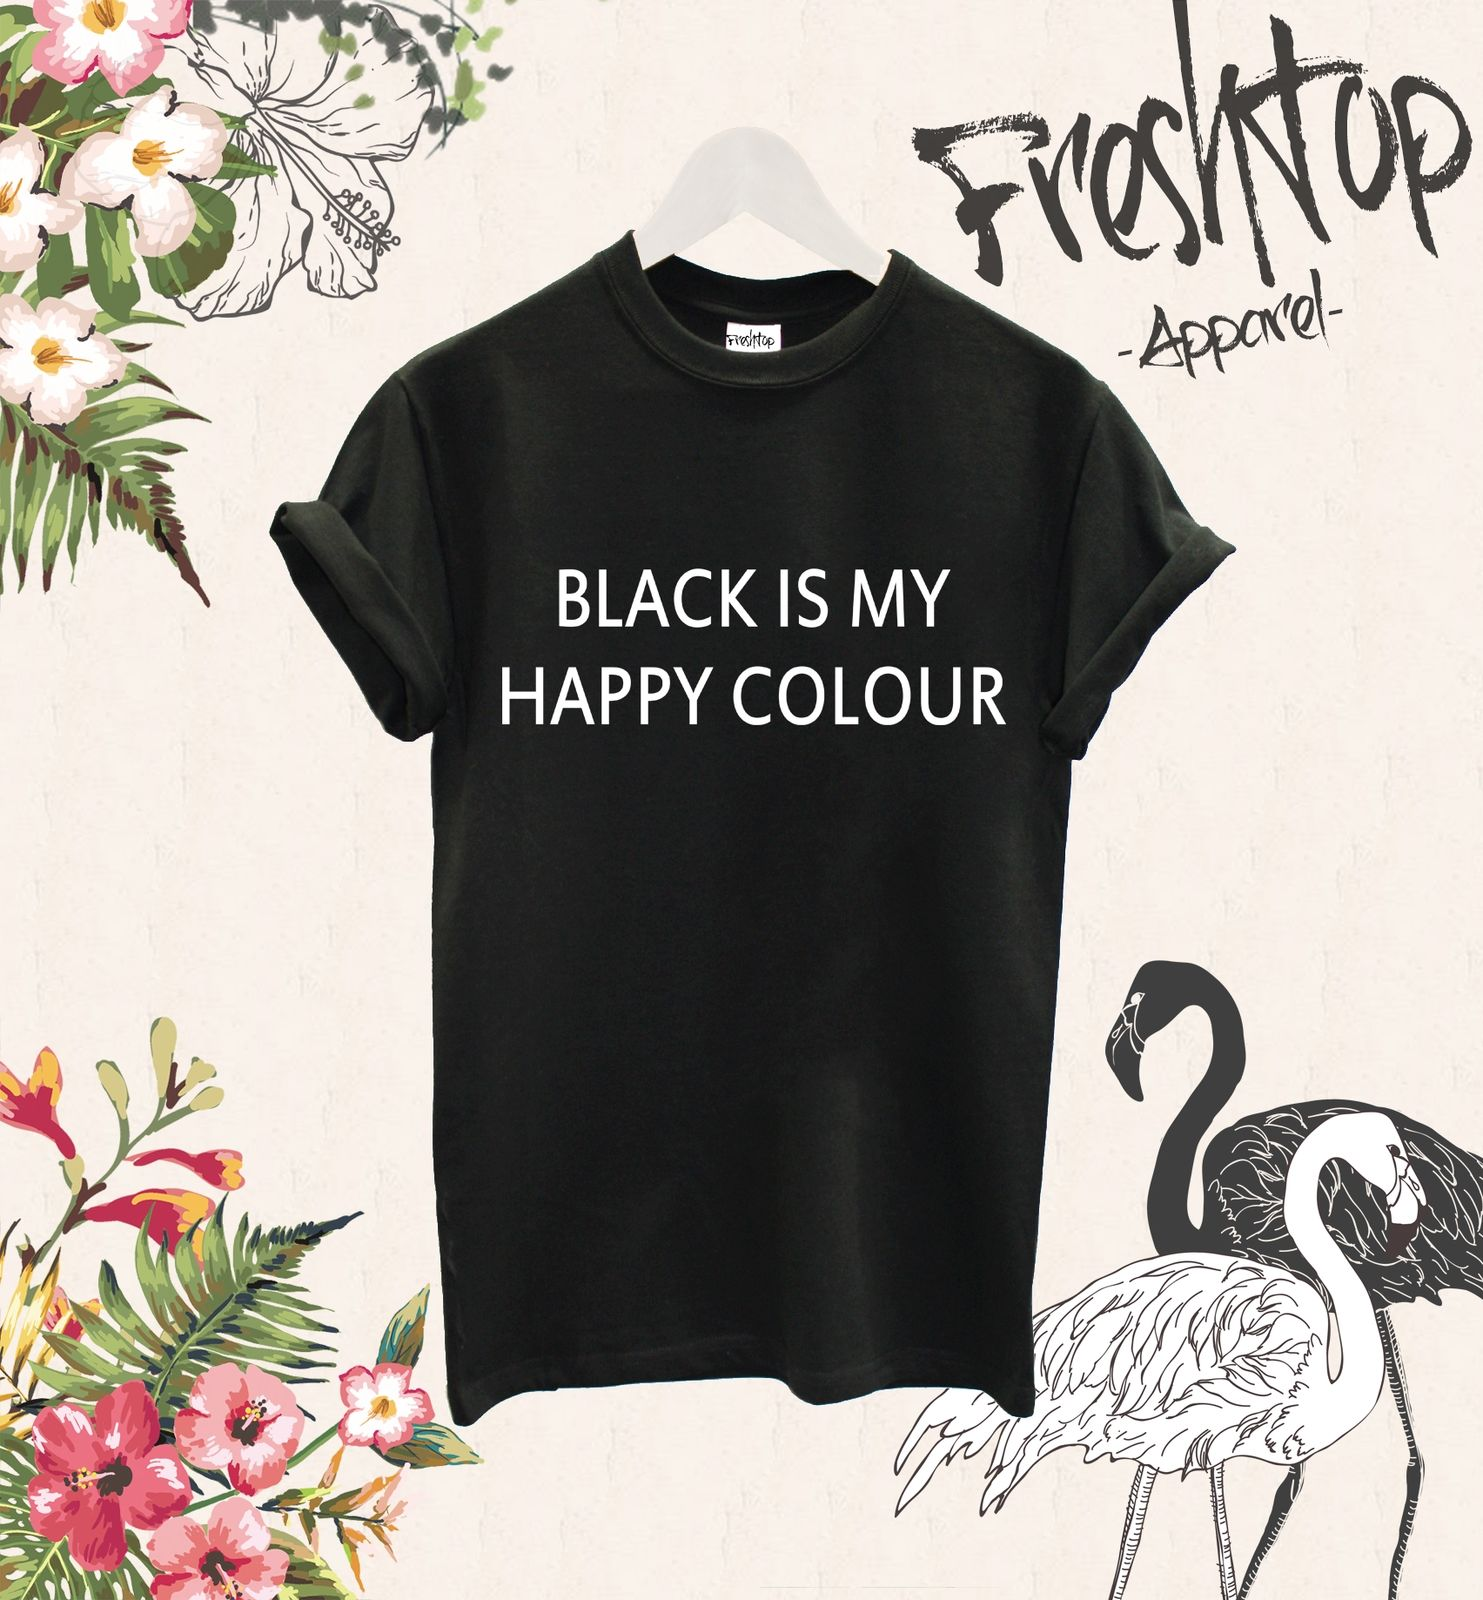 Black Is My Happy Colour T Shirt Vogue Festival Friday Hipster Grunge Rock Metal T Shirt Women Printed Funny Tee Shirts